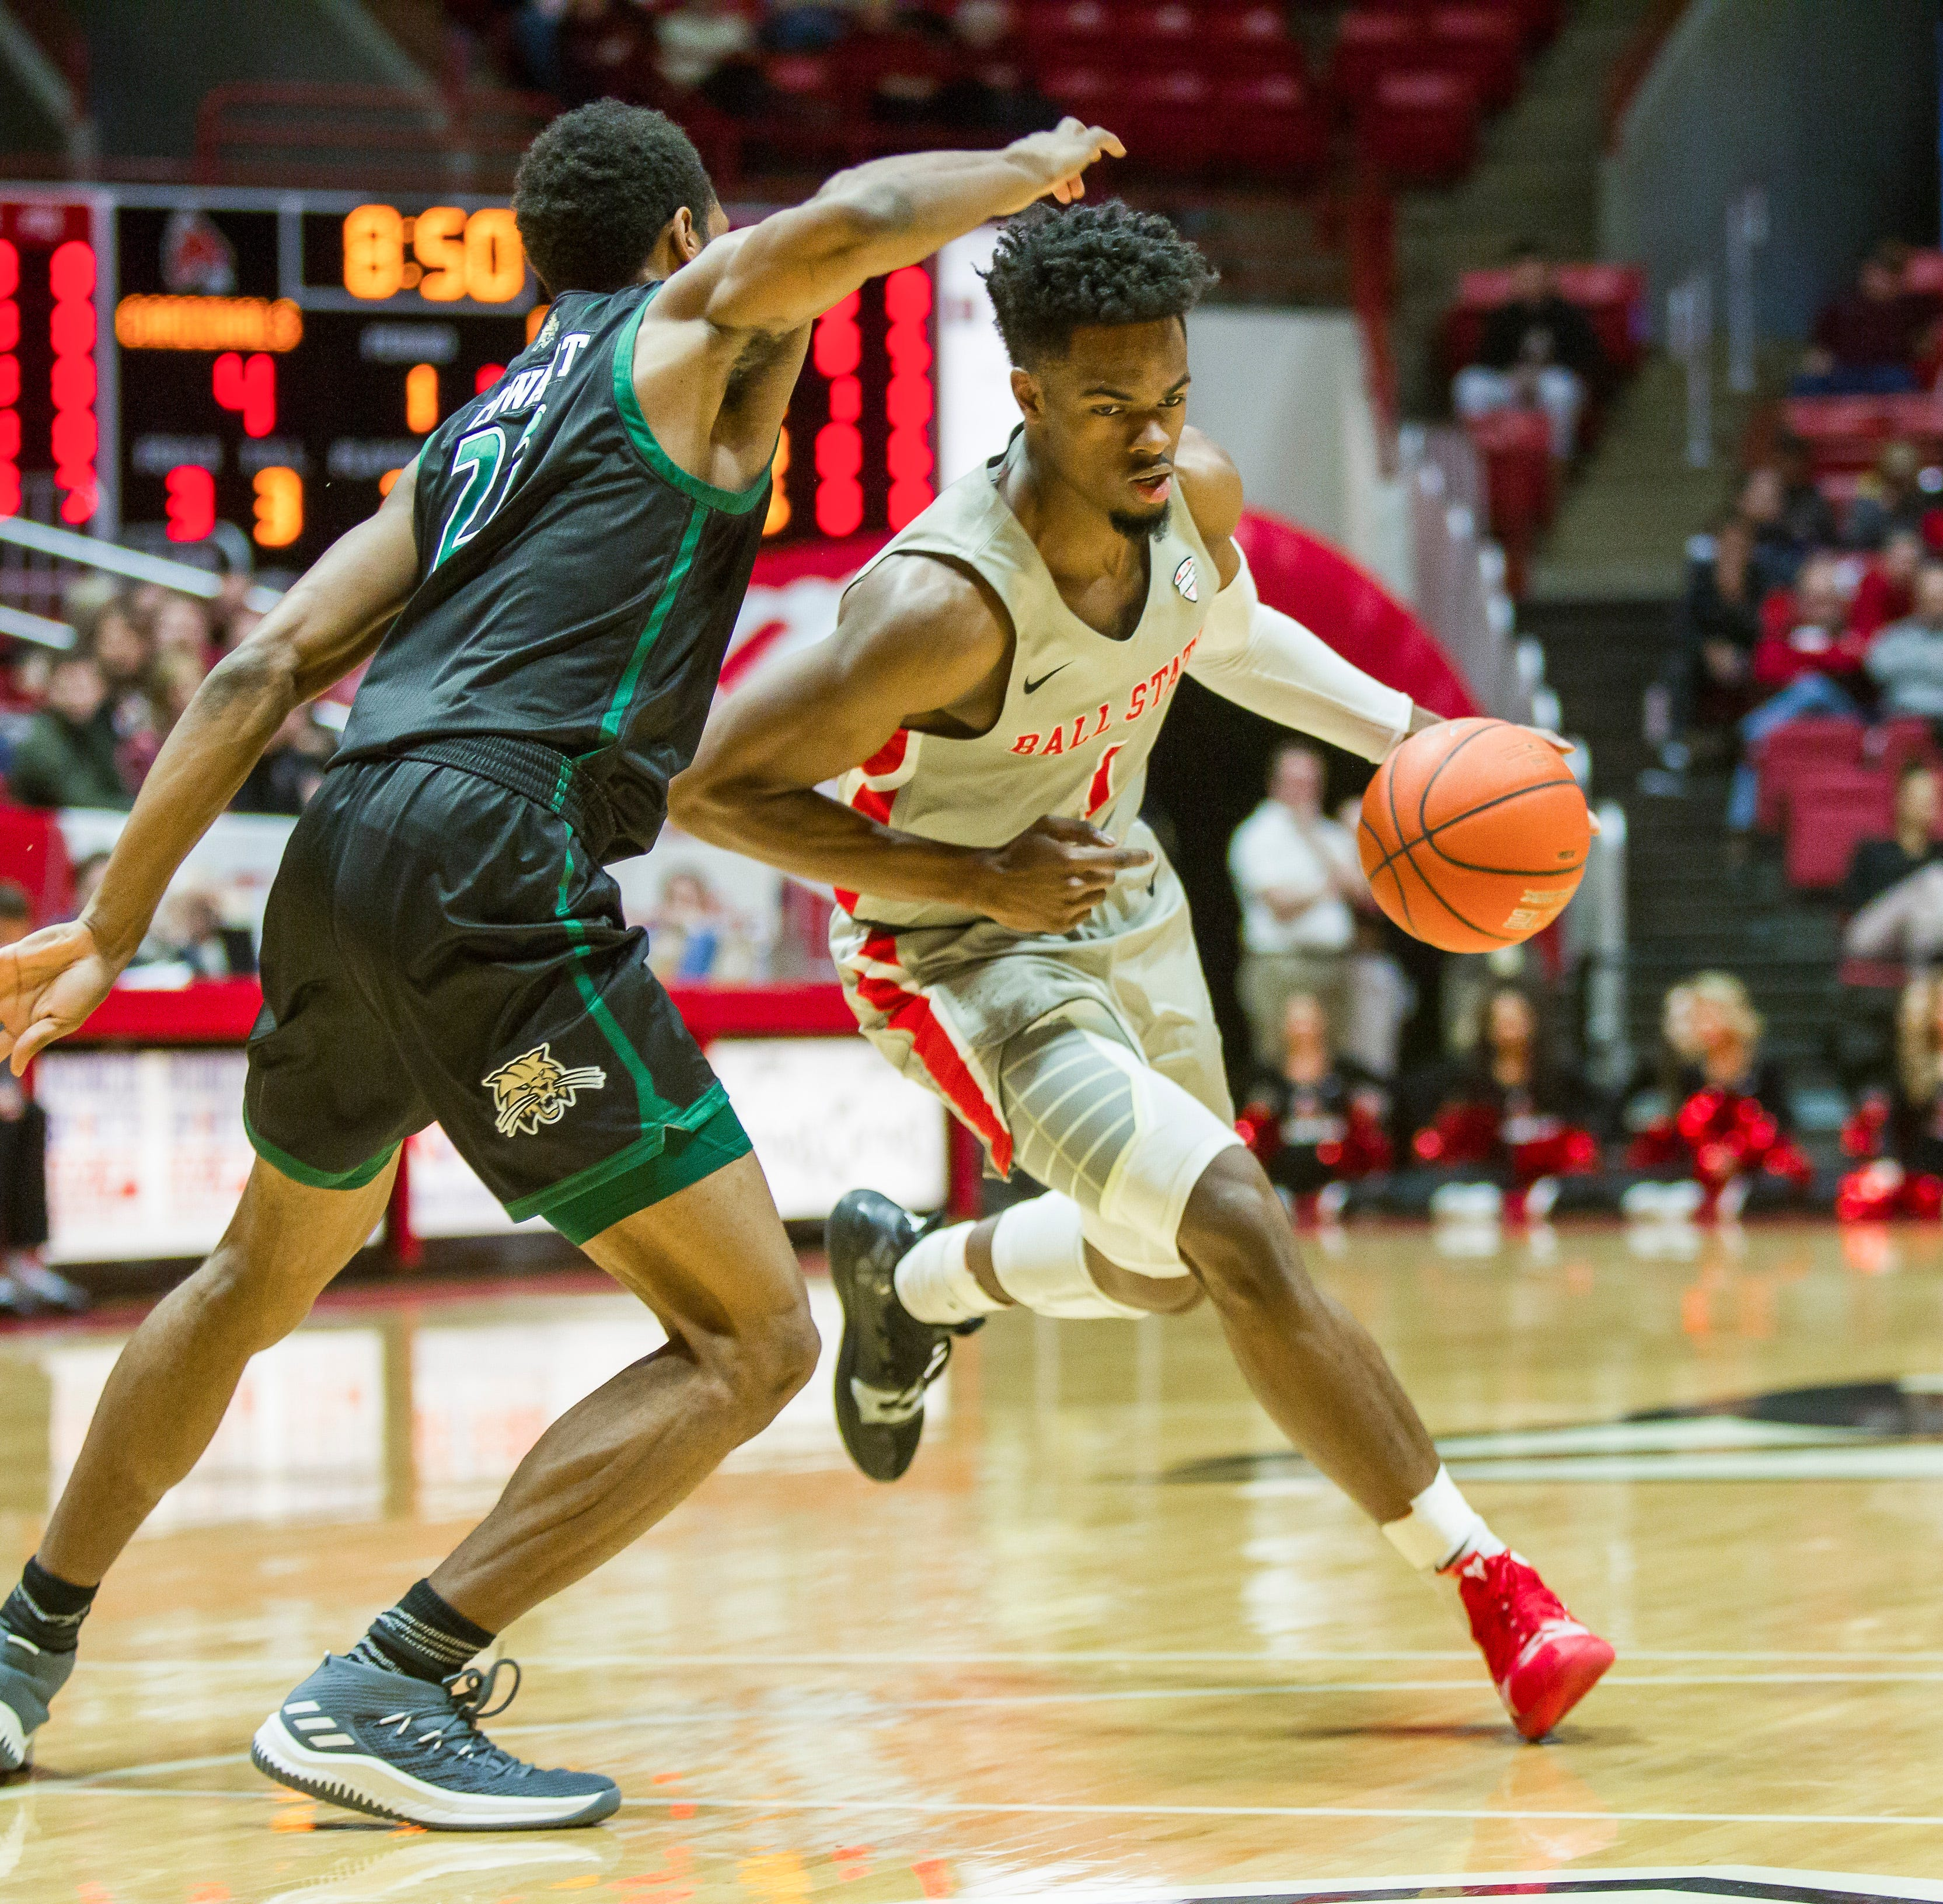 Ball State basketball has some soul-searching to do after lopsided home loss to Ohio